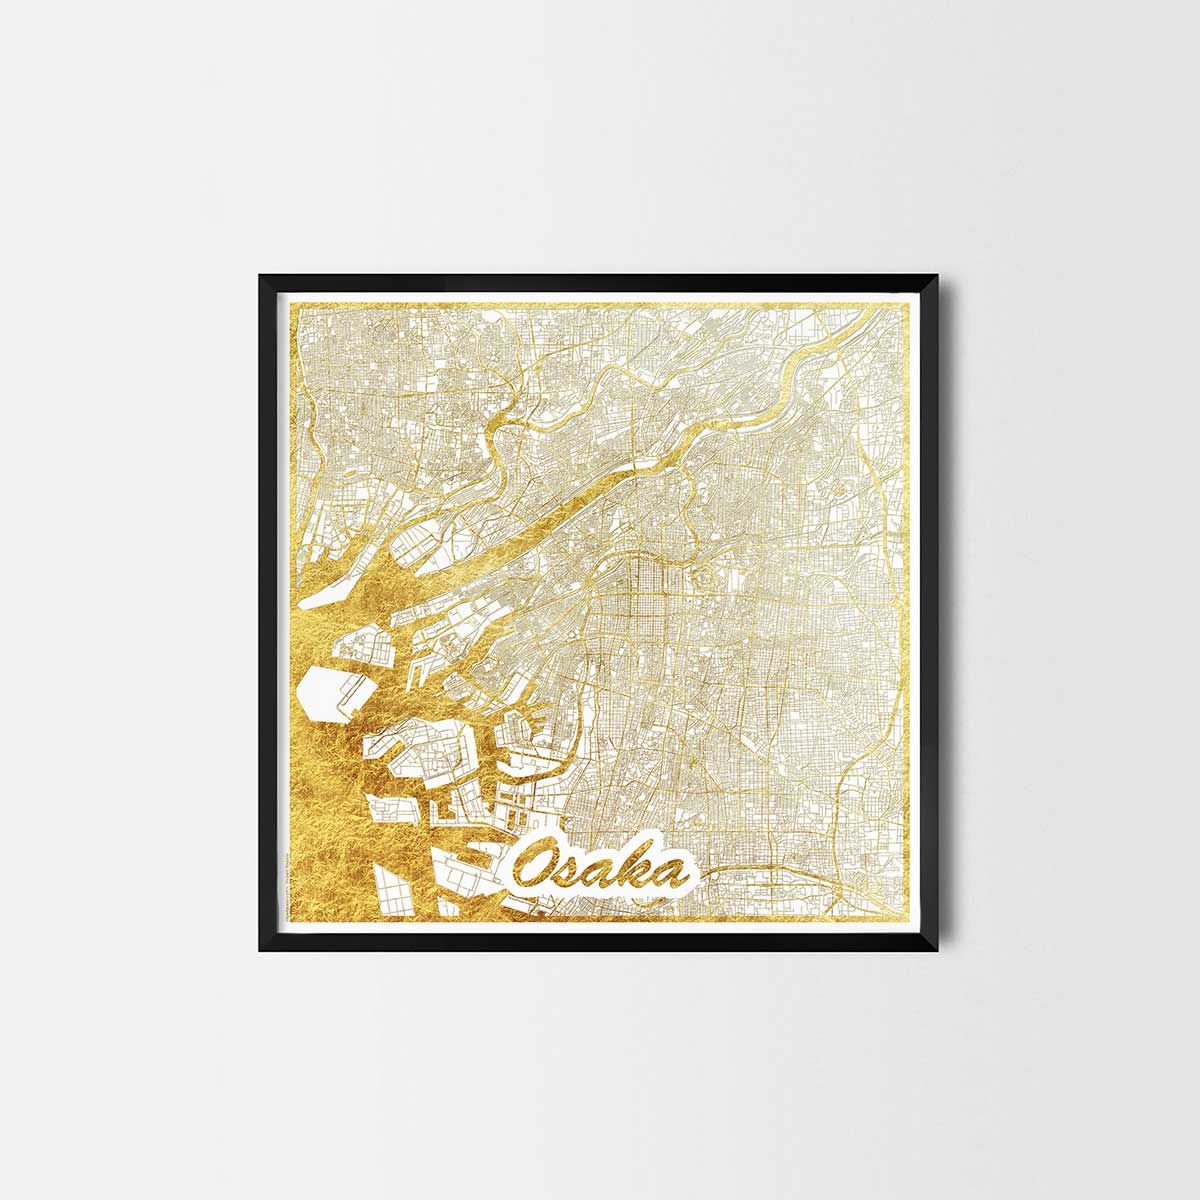 Osaka Map Art City Poster Unique Interior Decor Idea For Offices Art Posters Or Kitchen Art Prints Minimalist City Art Gifts For Travelers As Framed Art